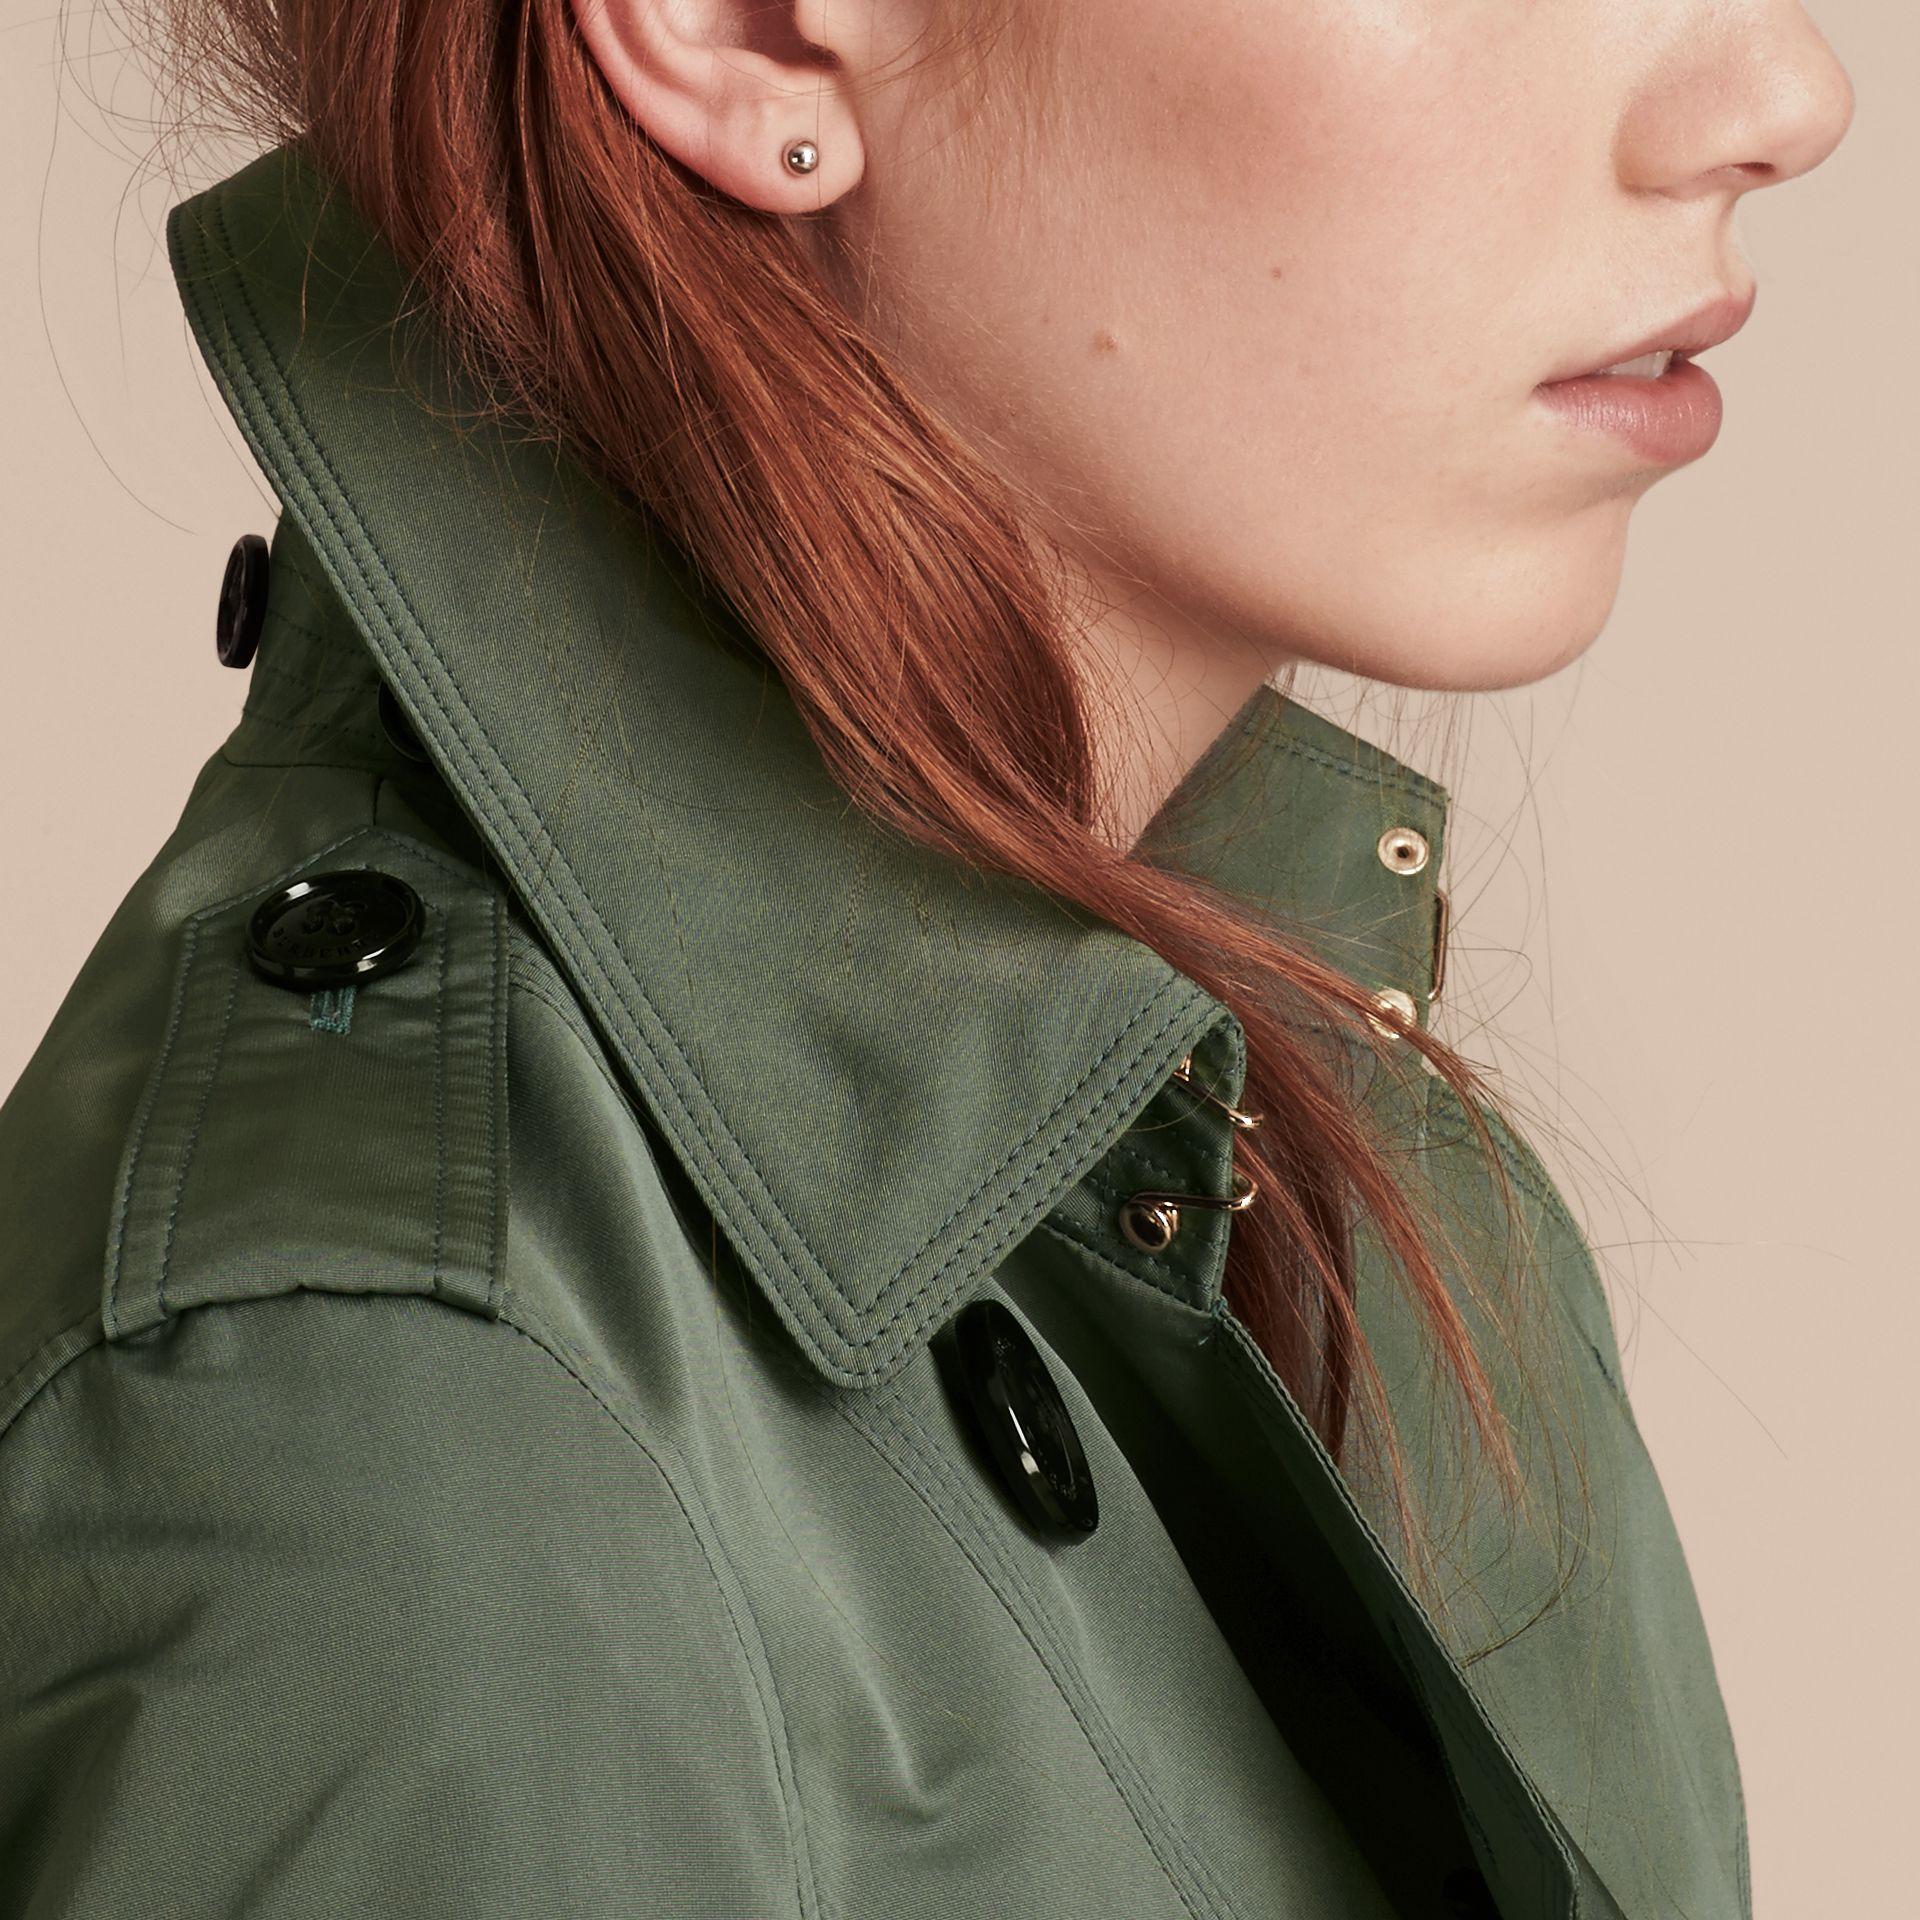 Eucalyptus green Showerproof Taffeta Trench Jacket with Detachable Hood Eucalyptus Green - gallery image 5